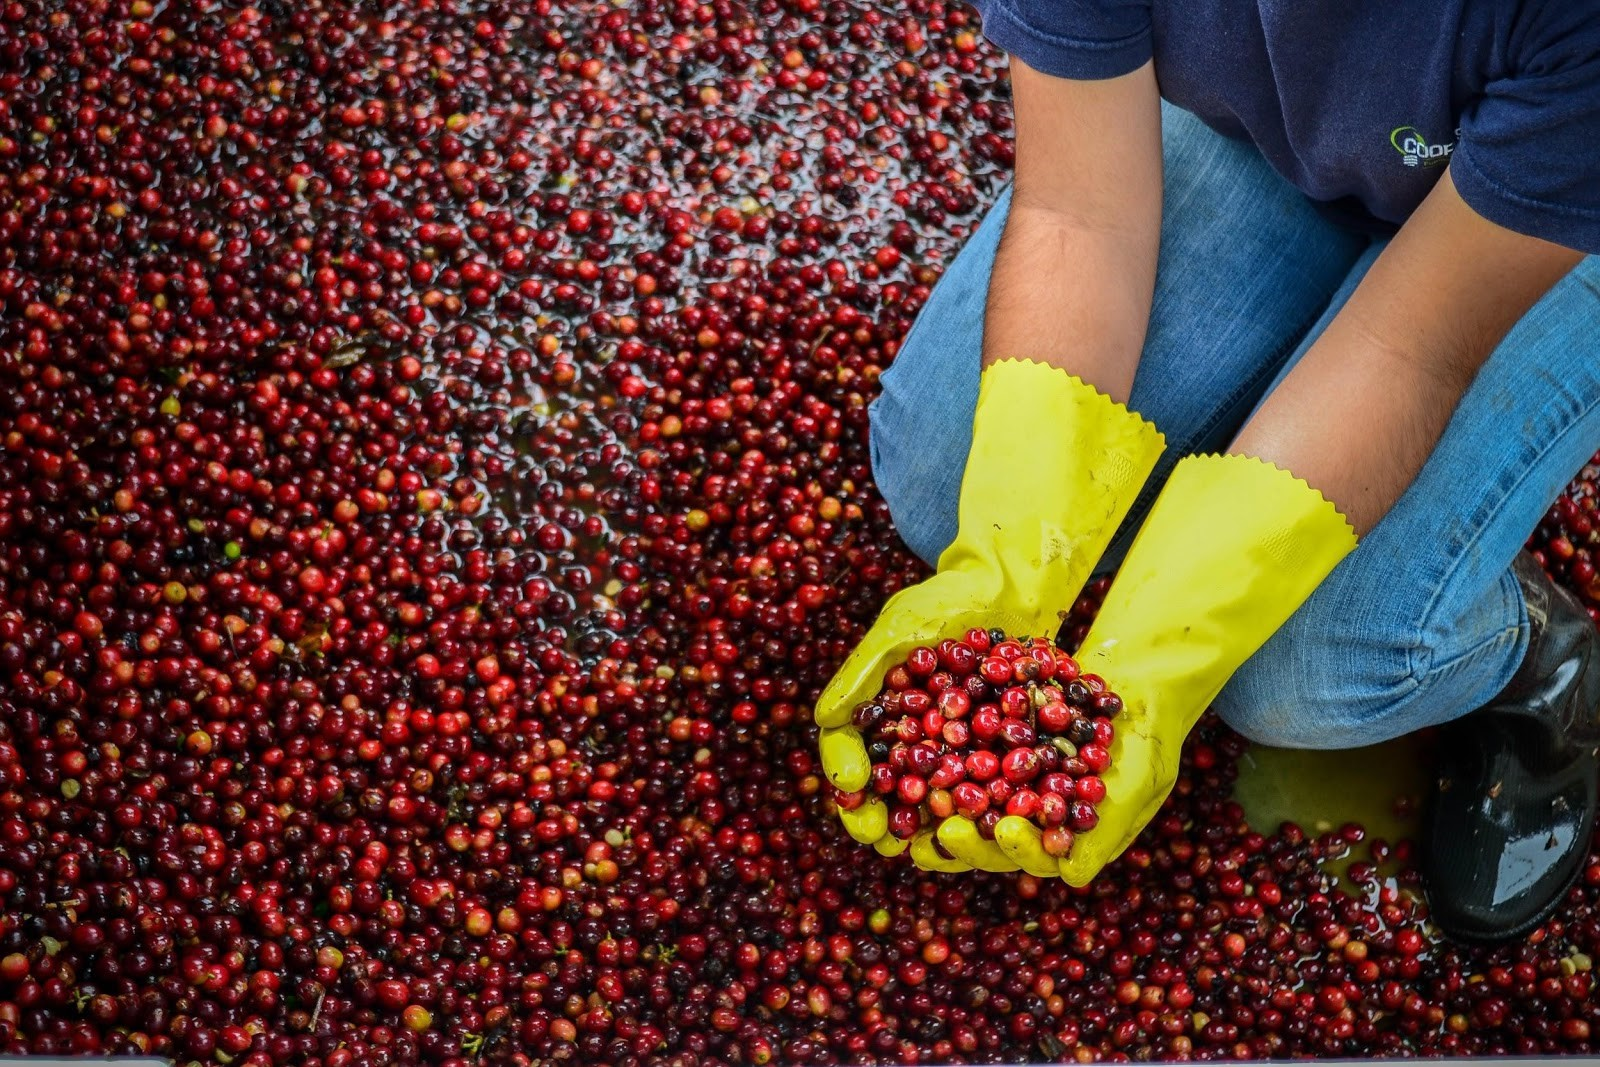 Producer holding ripe coffee cherries